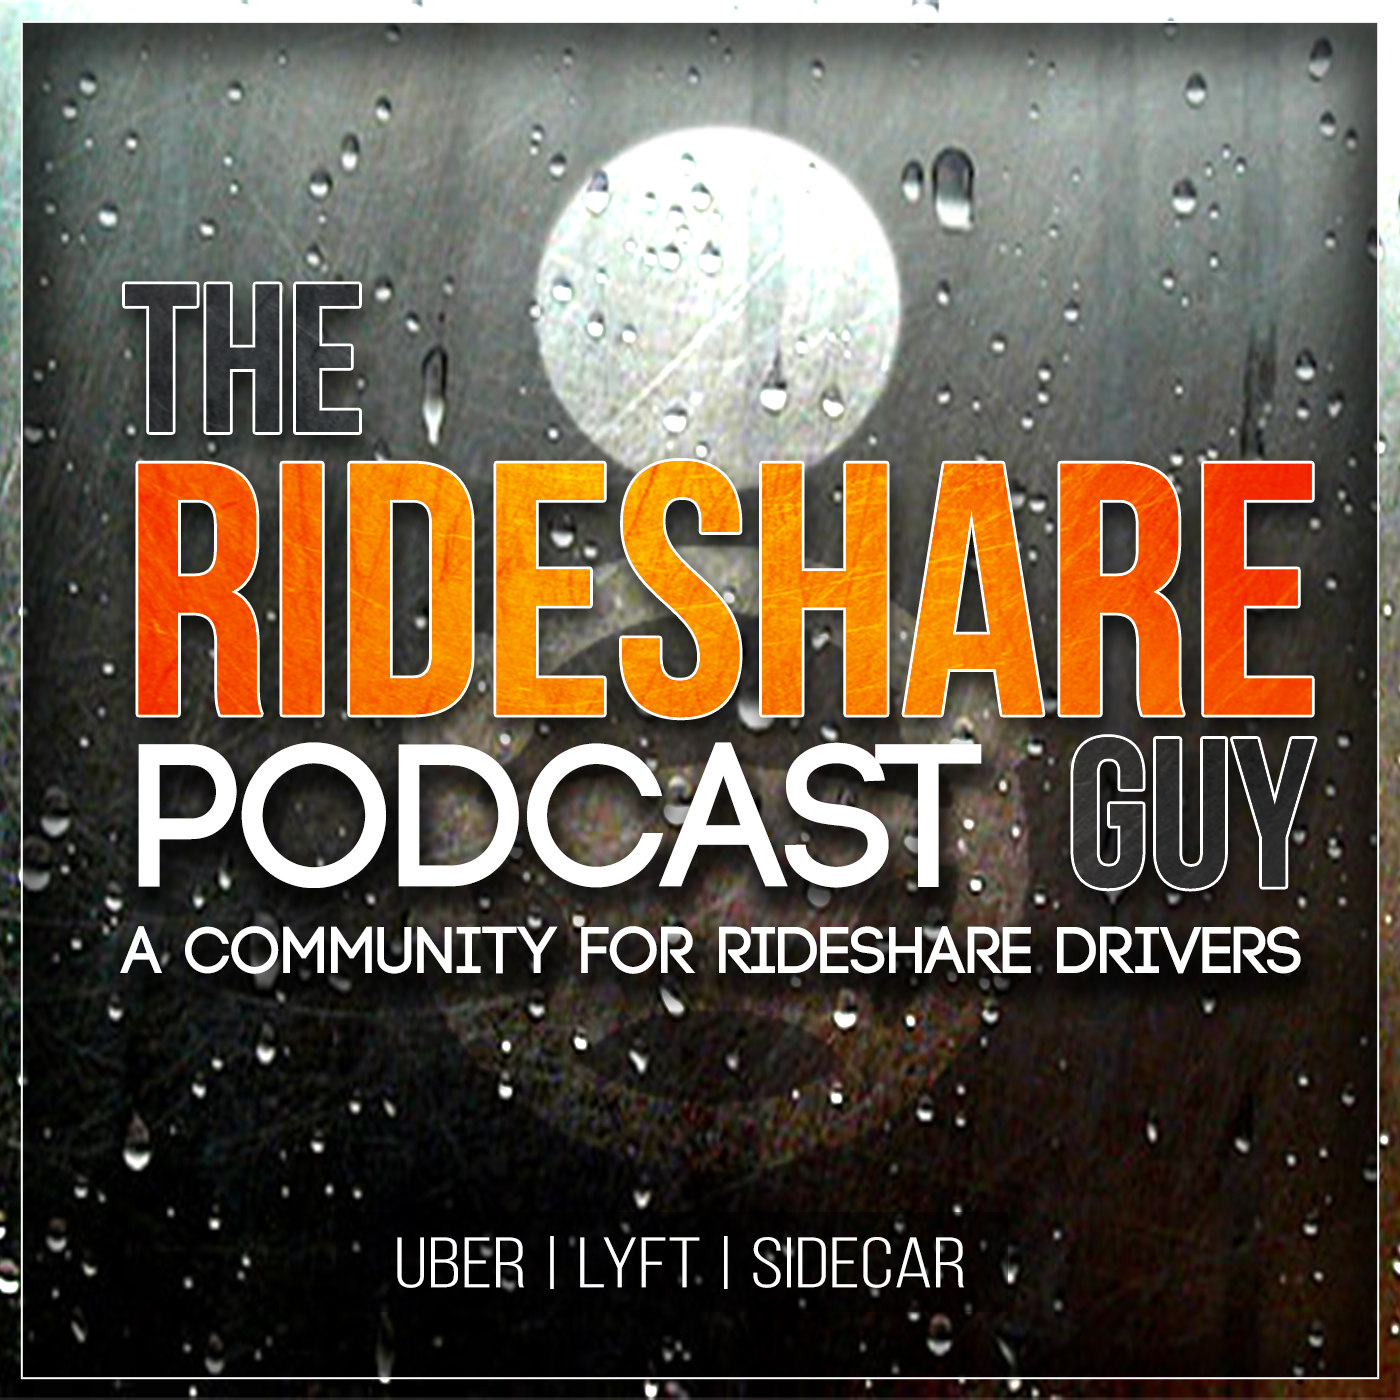 The Rideshare Guy Podcast : A Community for Rideshare Drivers | Uber | Lyft | Sidecar